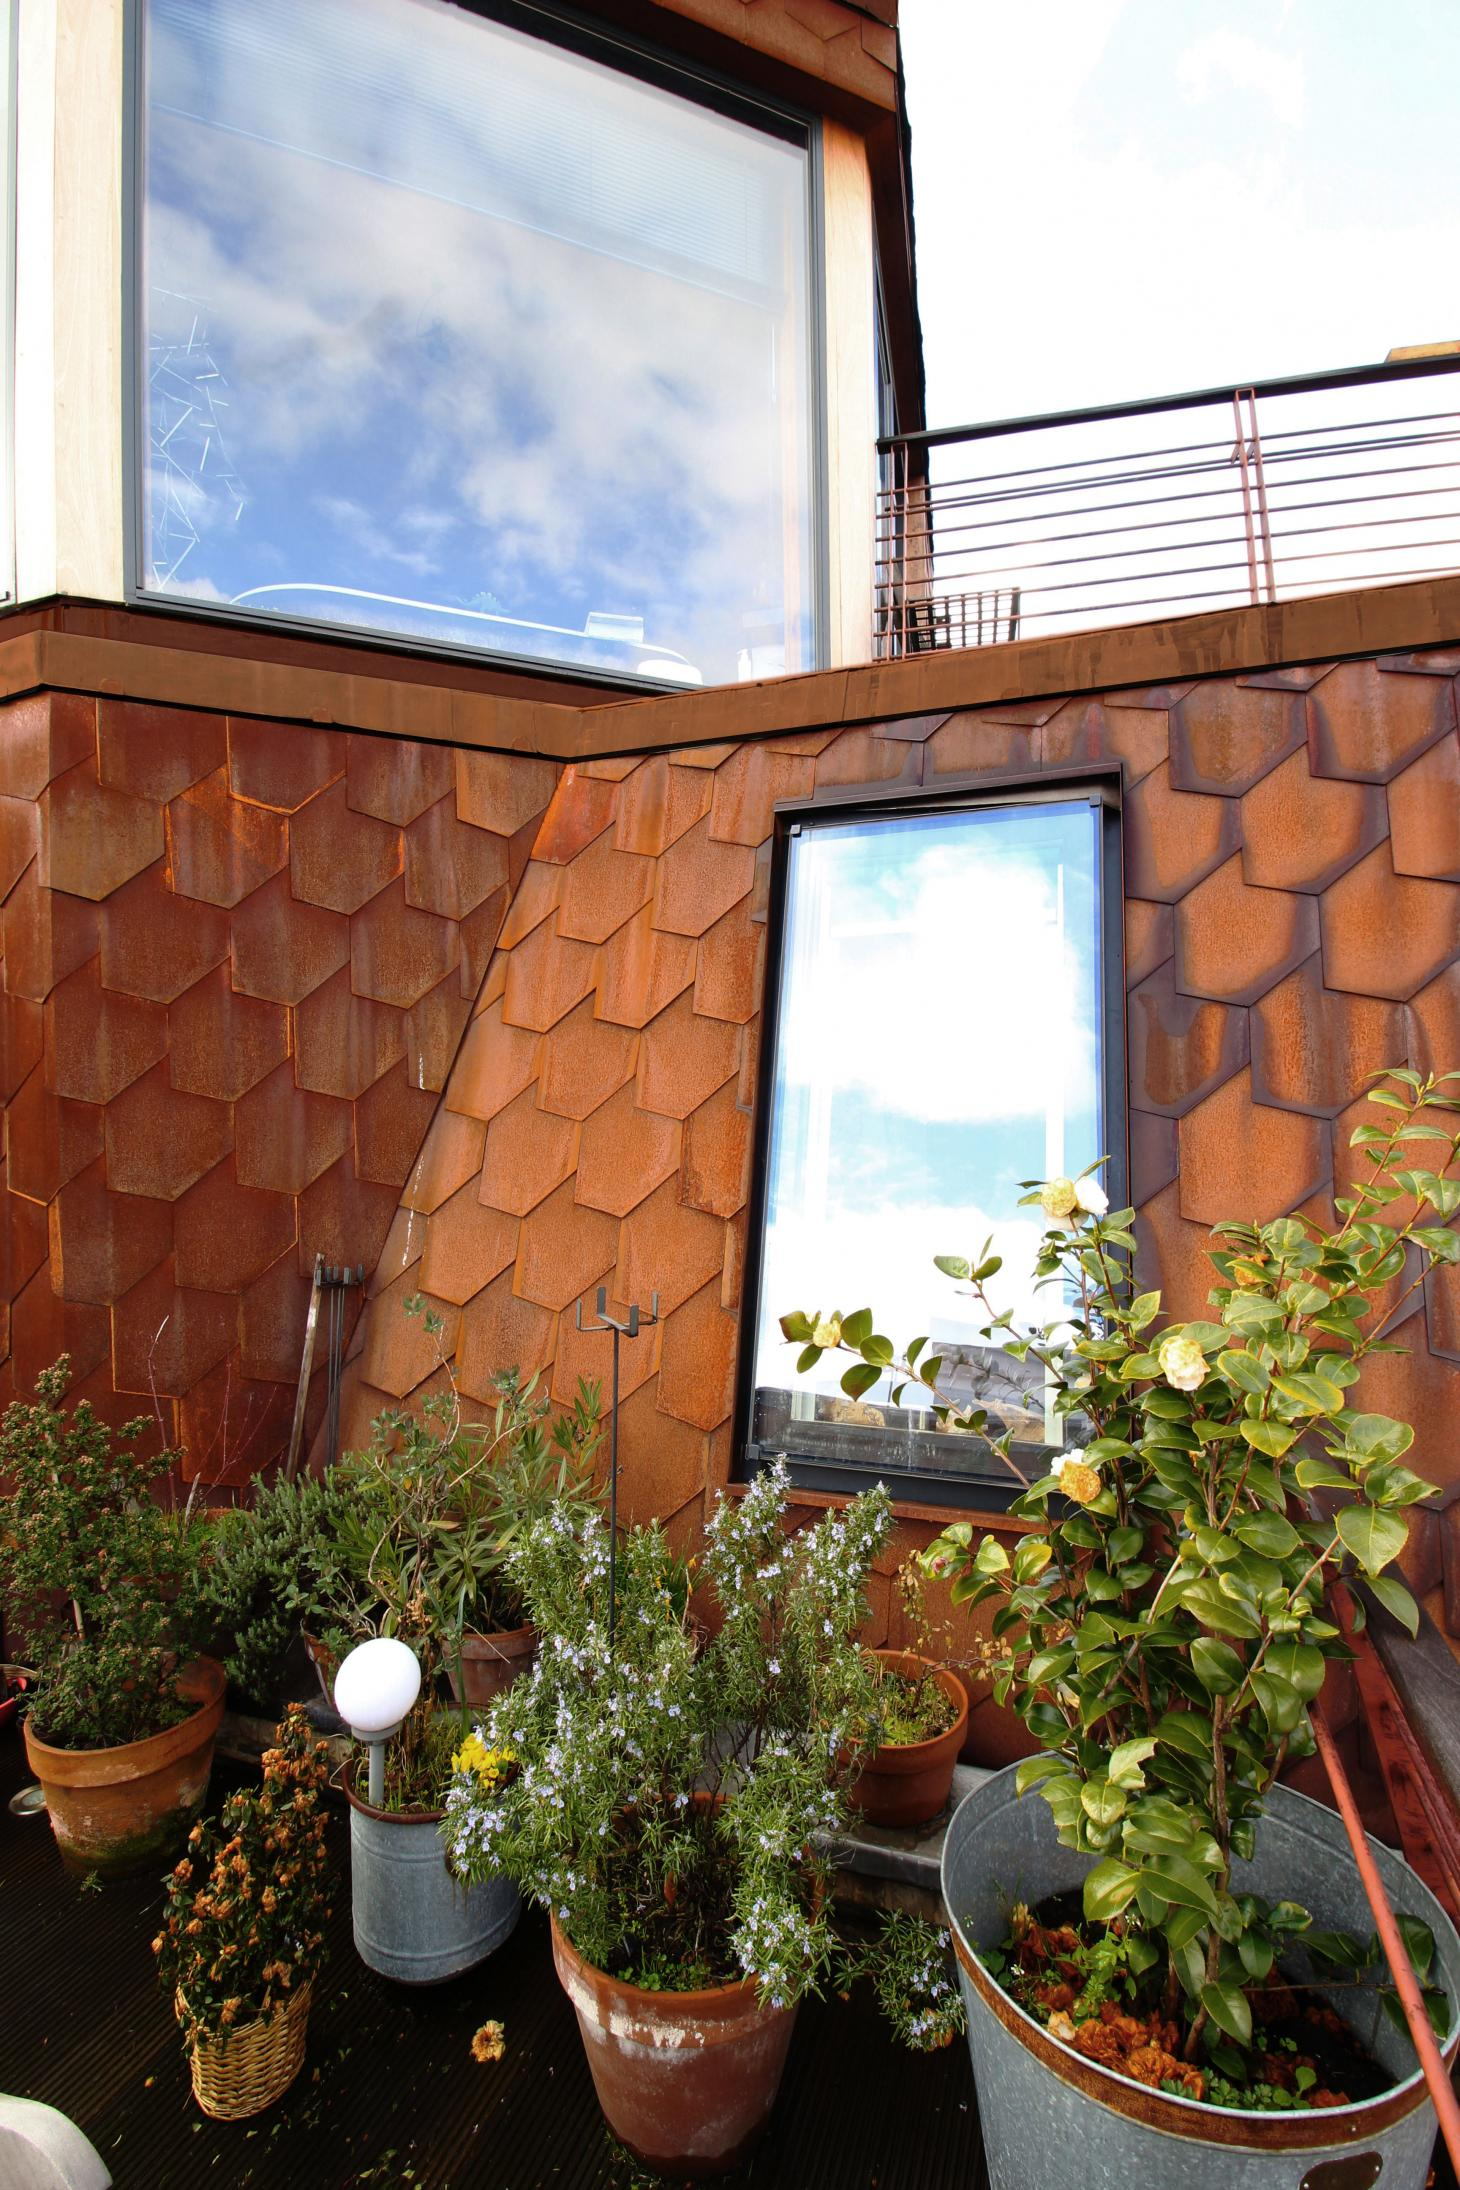 Upper terrace with Corten tiling on the roof